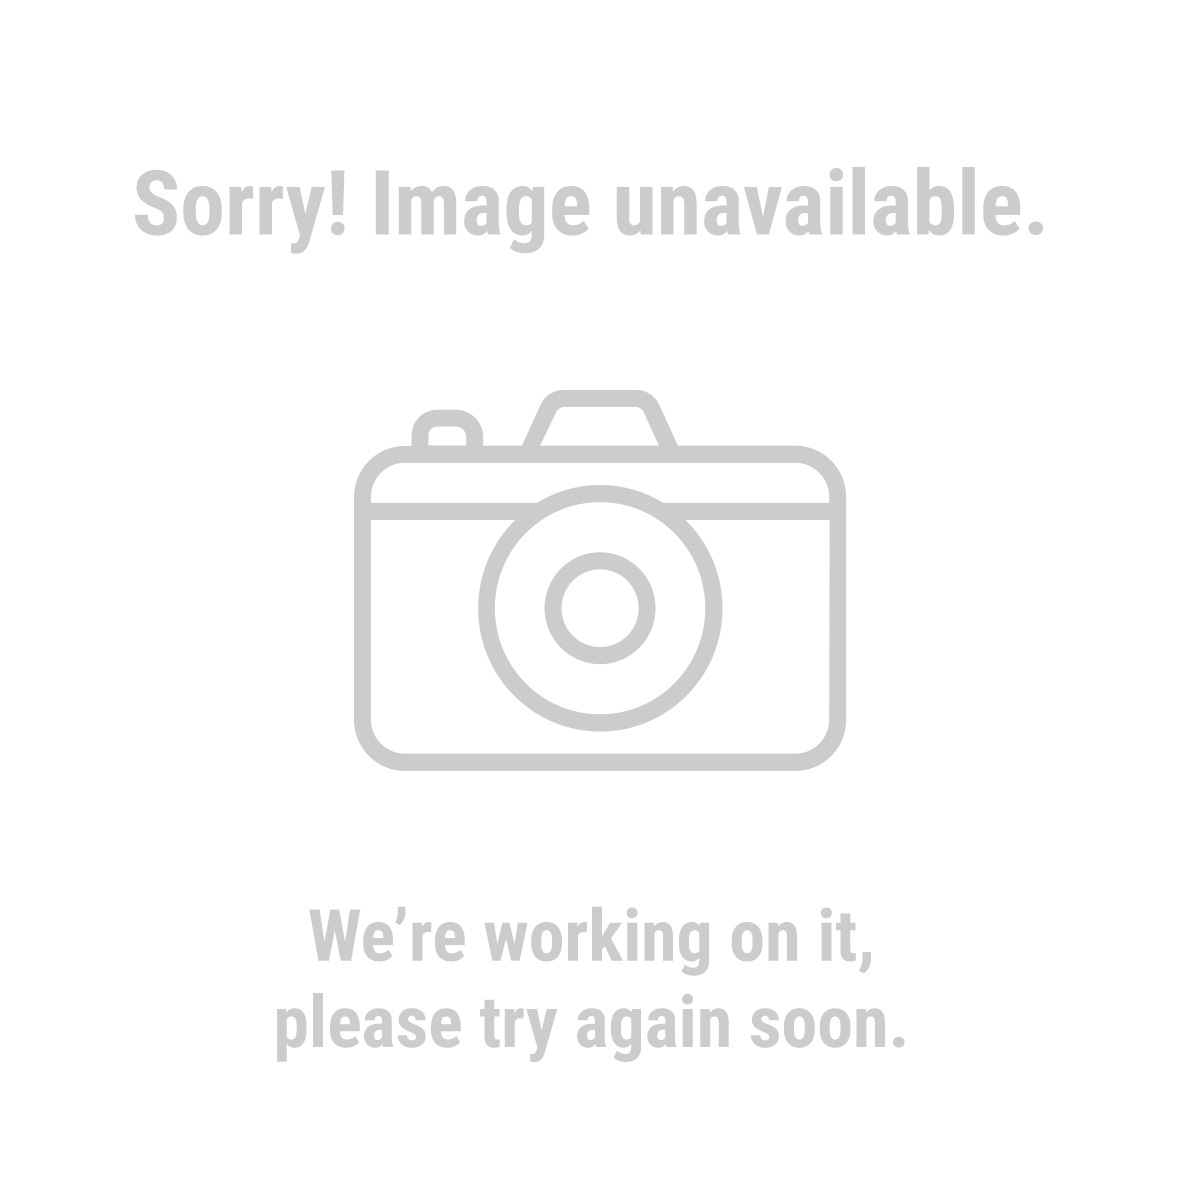 HFT 69690 Magnifying Glass with Light